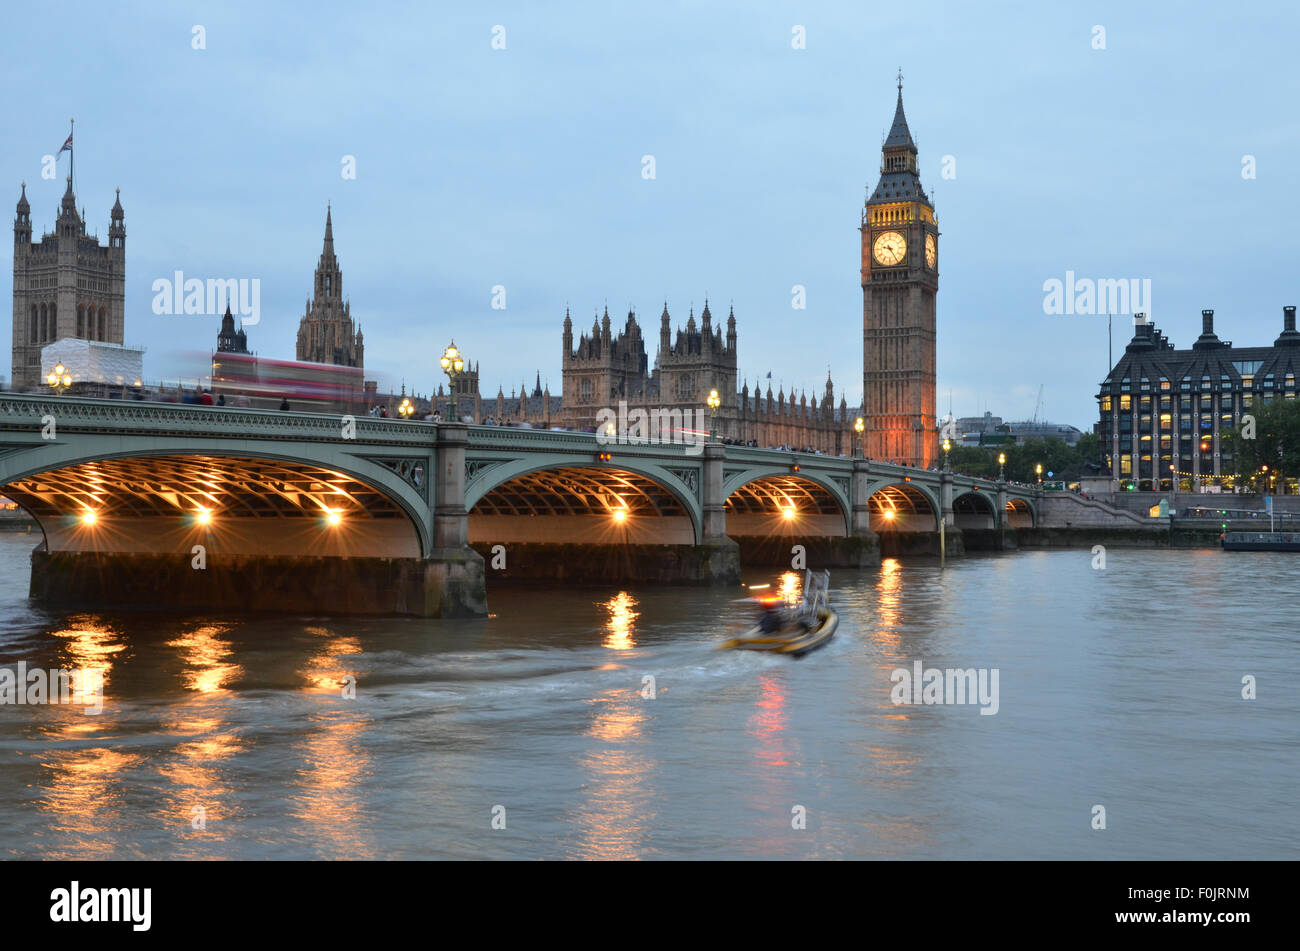 Big Ben, London, England - Stock Image